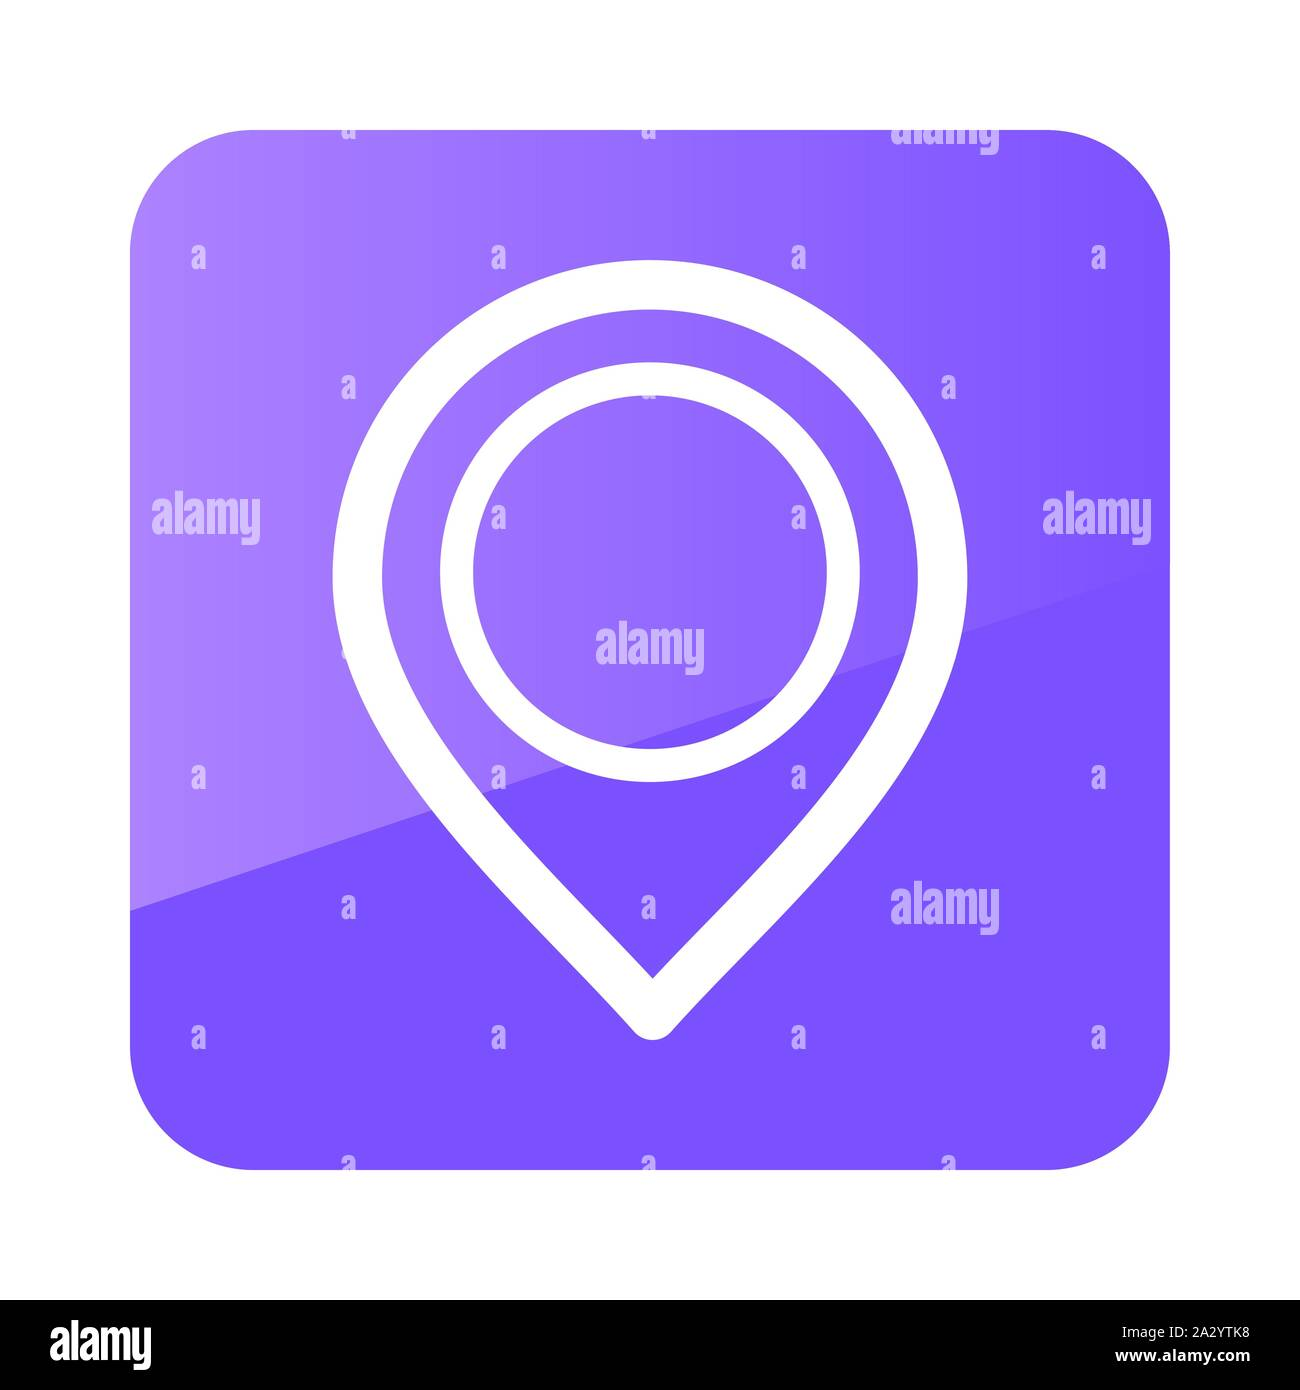 Pin Map Icon E Commerce Sign Graph Symbol For Your Web Site Design Logo App Ui Vector Illustration Eps10 Stock Vector Image Art Alamy